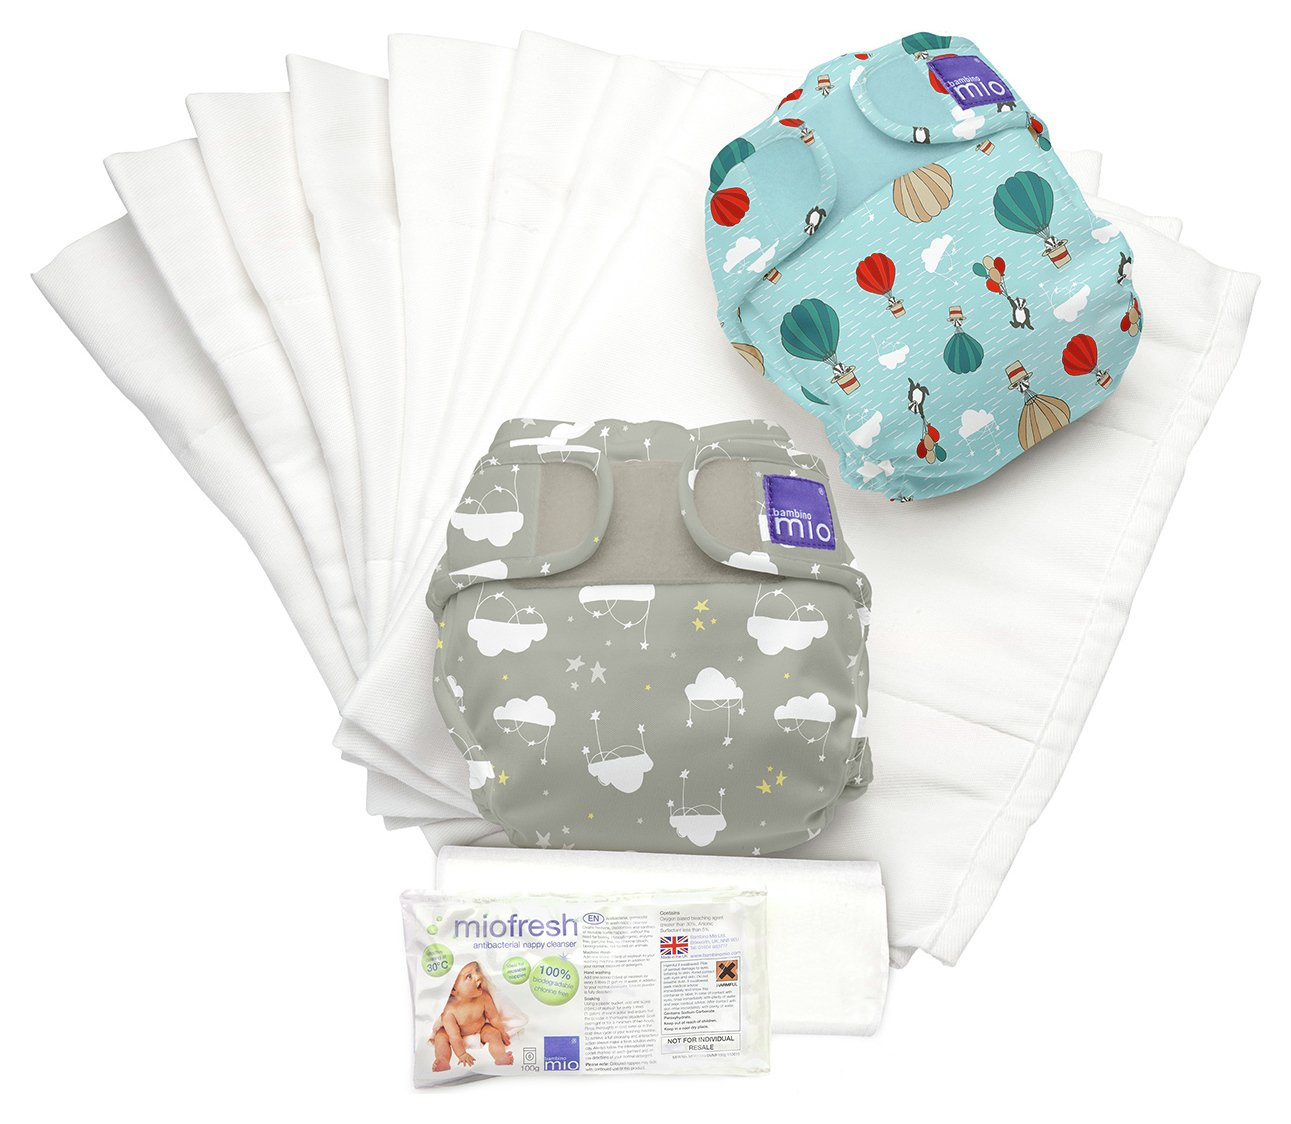 Image of Bambino Mio Miosoft Reusable Nappy Dream Traveller - Grey & Blue